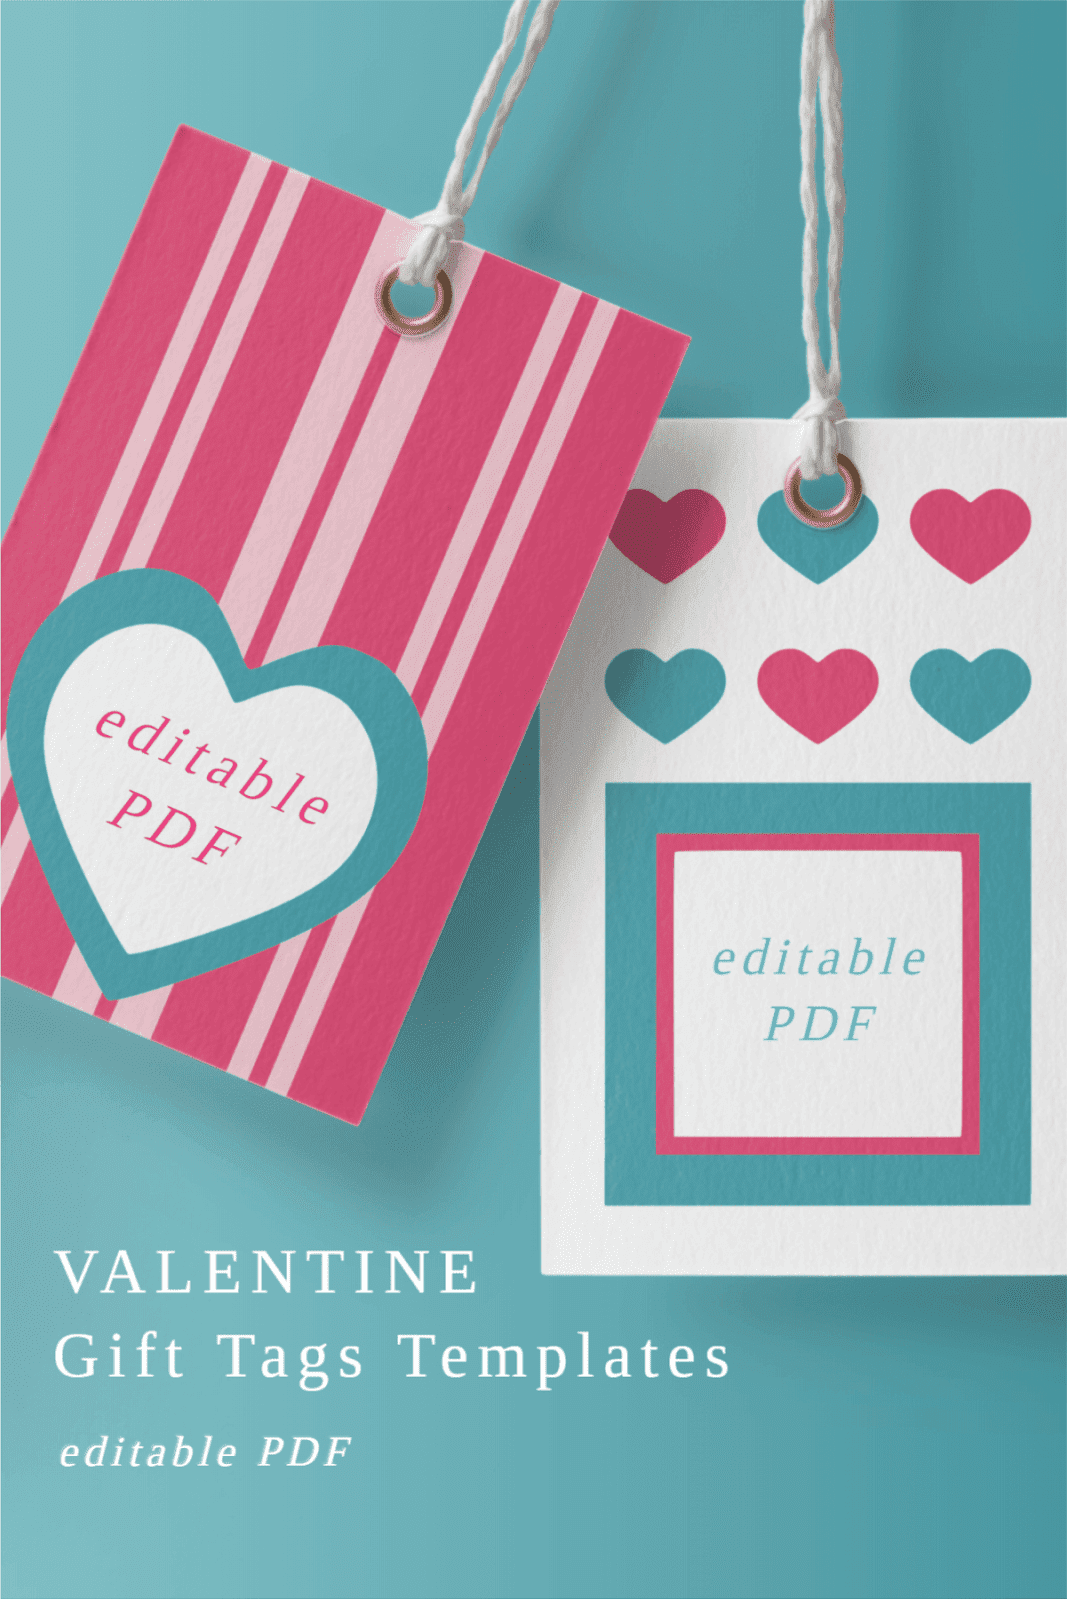 find more gprintable gift tags